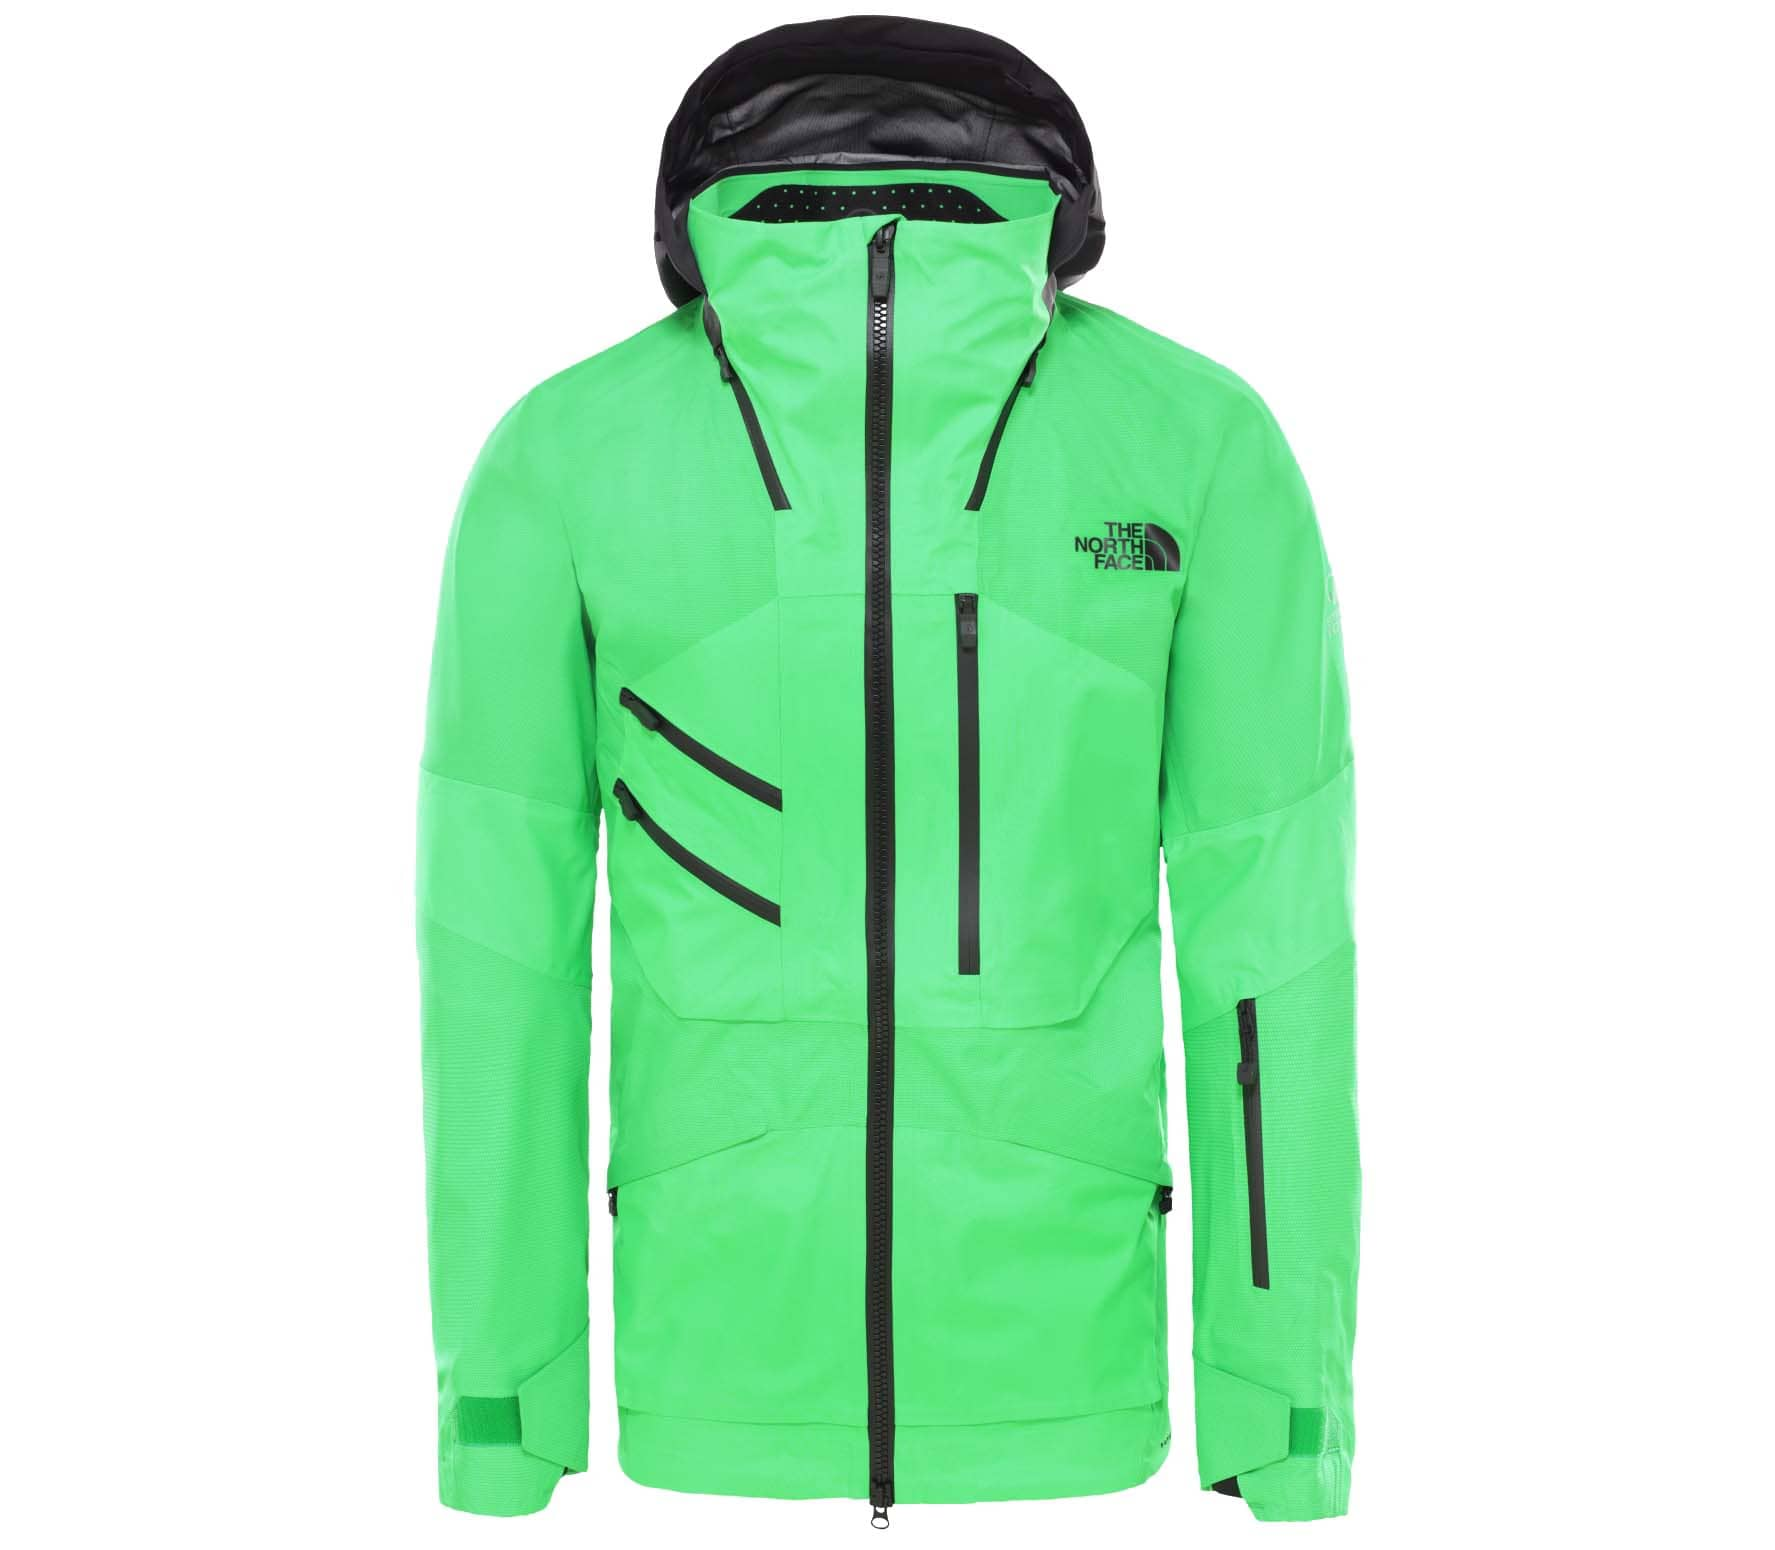 The North Face Brigandine Herren Skijacke (grün) 708,90 €